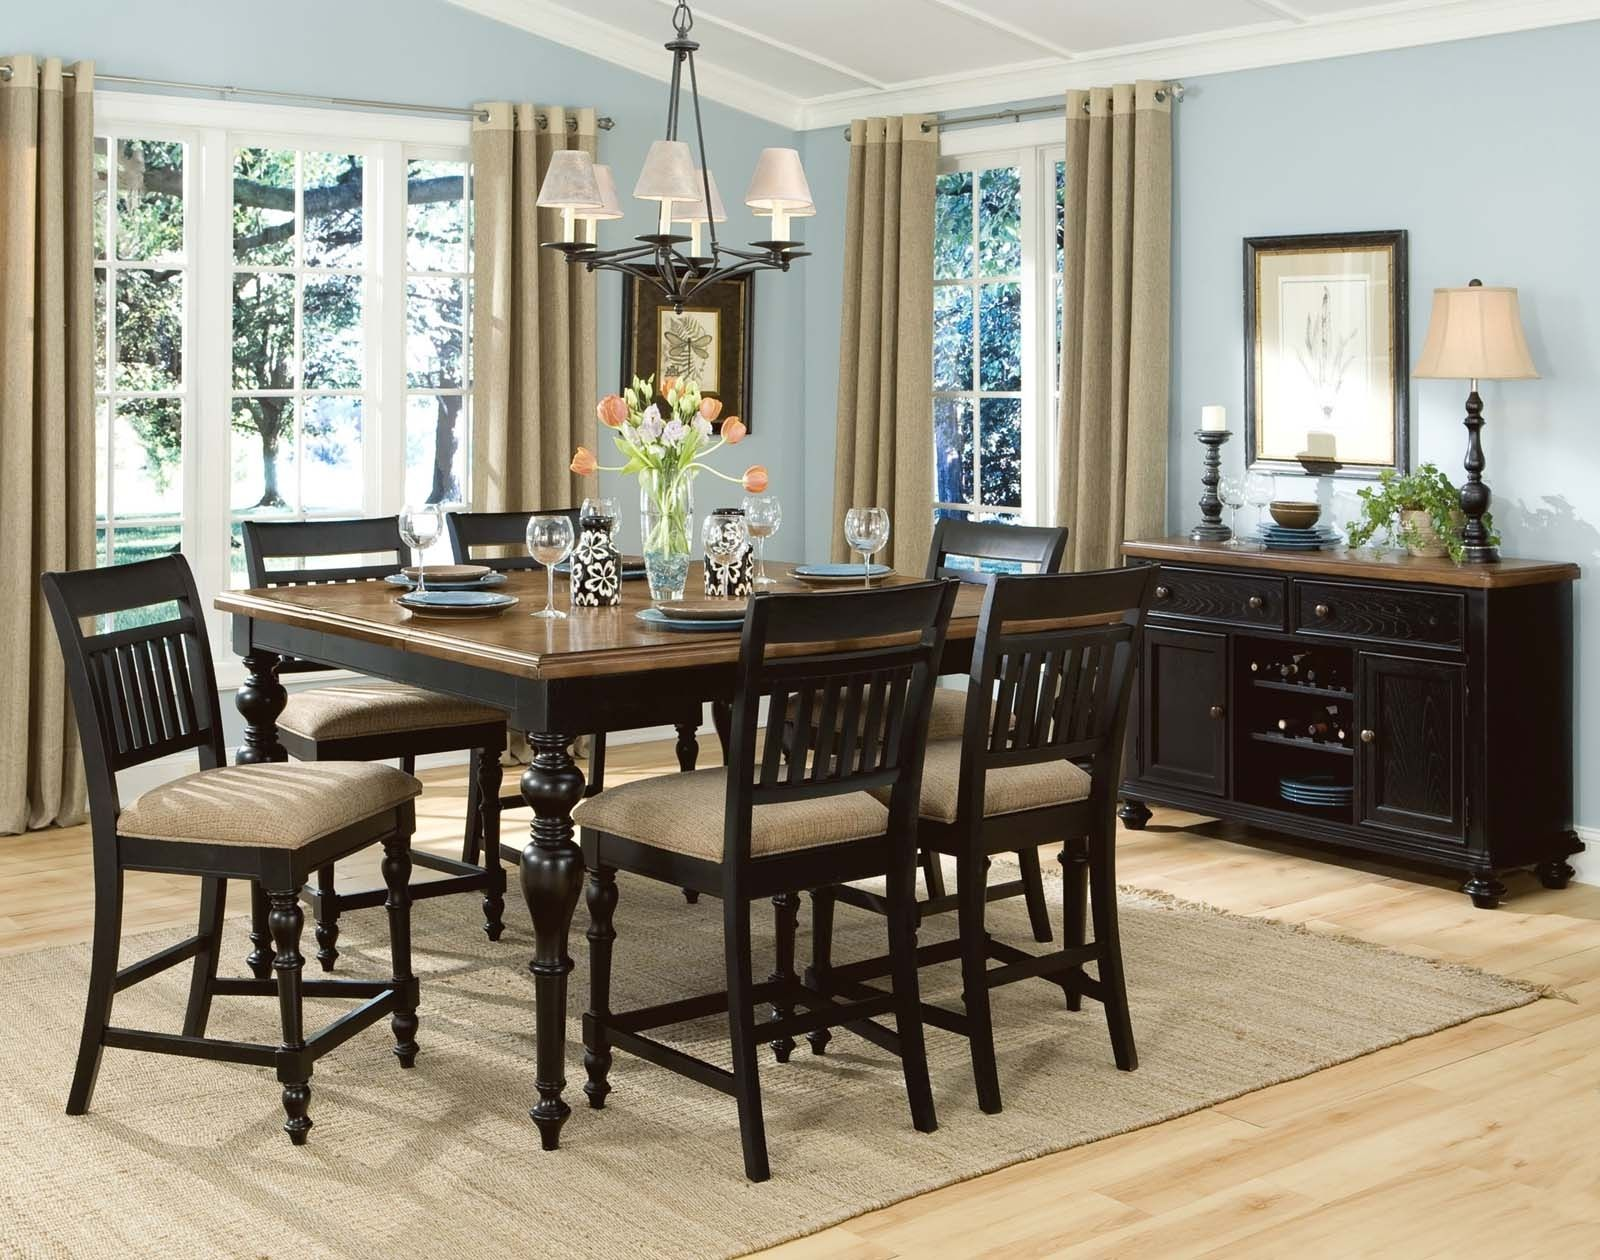 Pub style kitchen table 6 chairs httpsodakaustica pub style kitchen table 6 chairs watchthetrailerfo